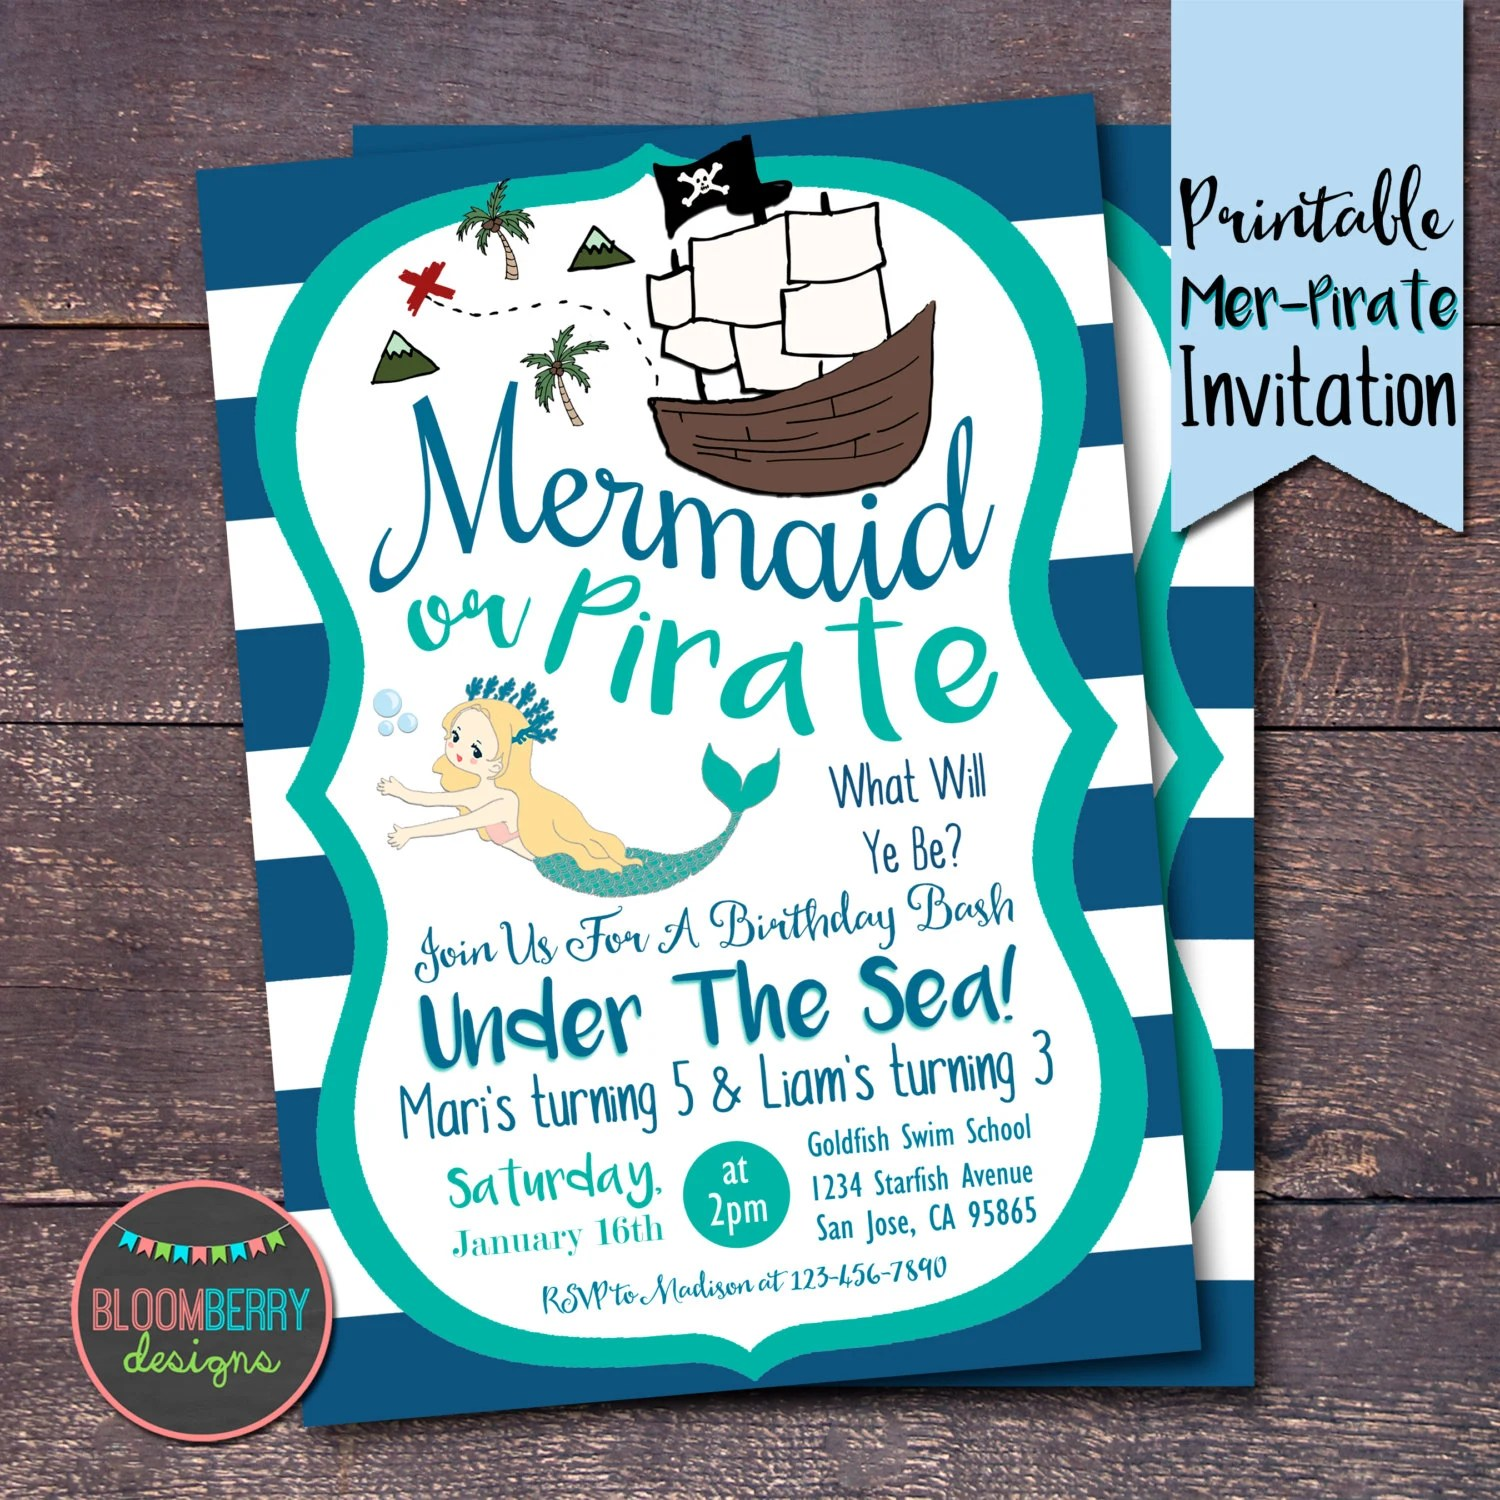 pirates and mermaids party invitation mermaid pirate birthday invitation mermaids invitation pirate invitation joint birthday party